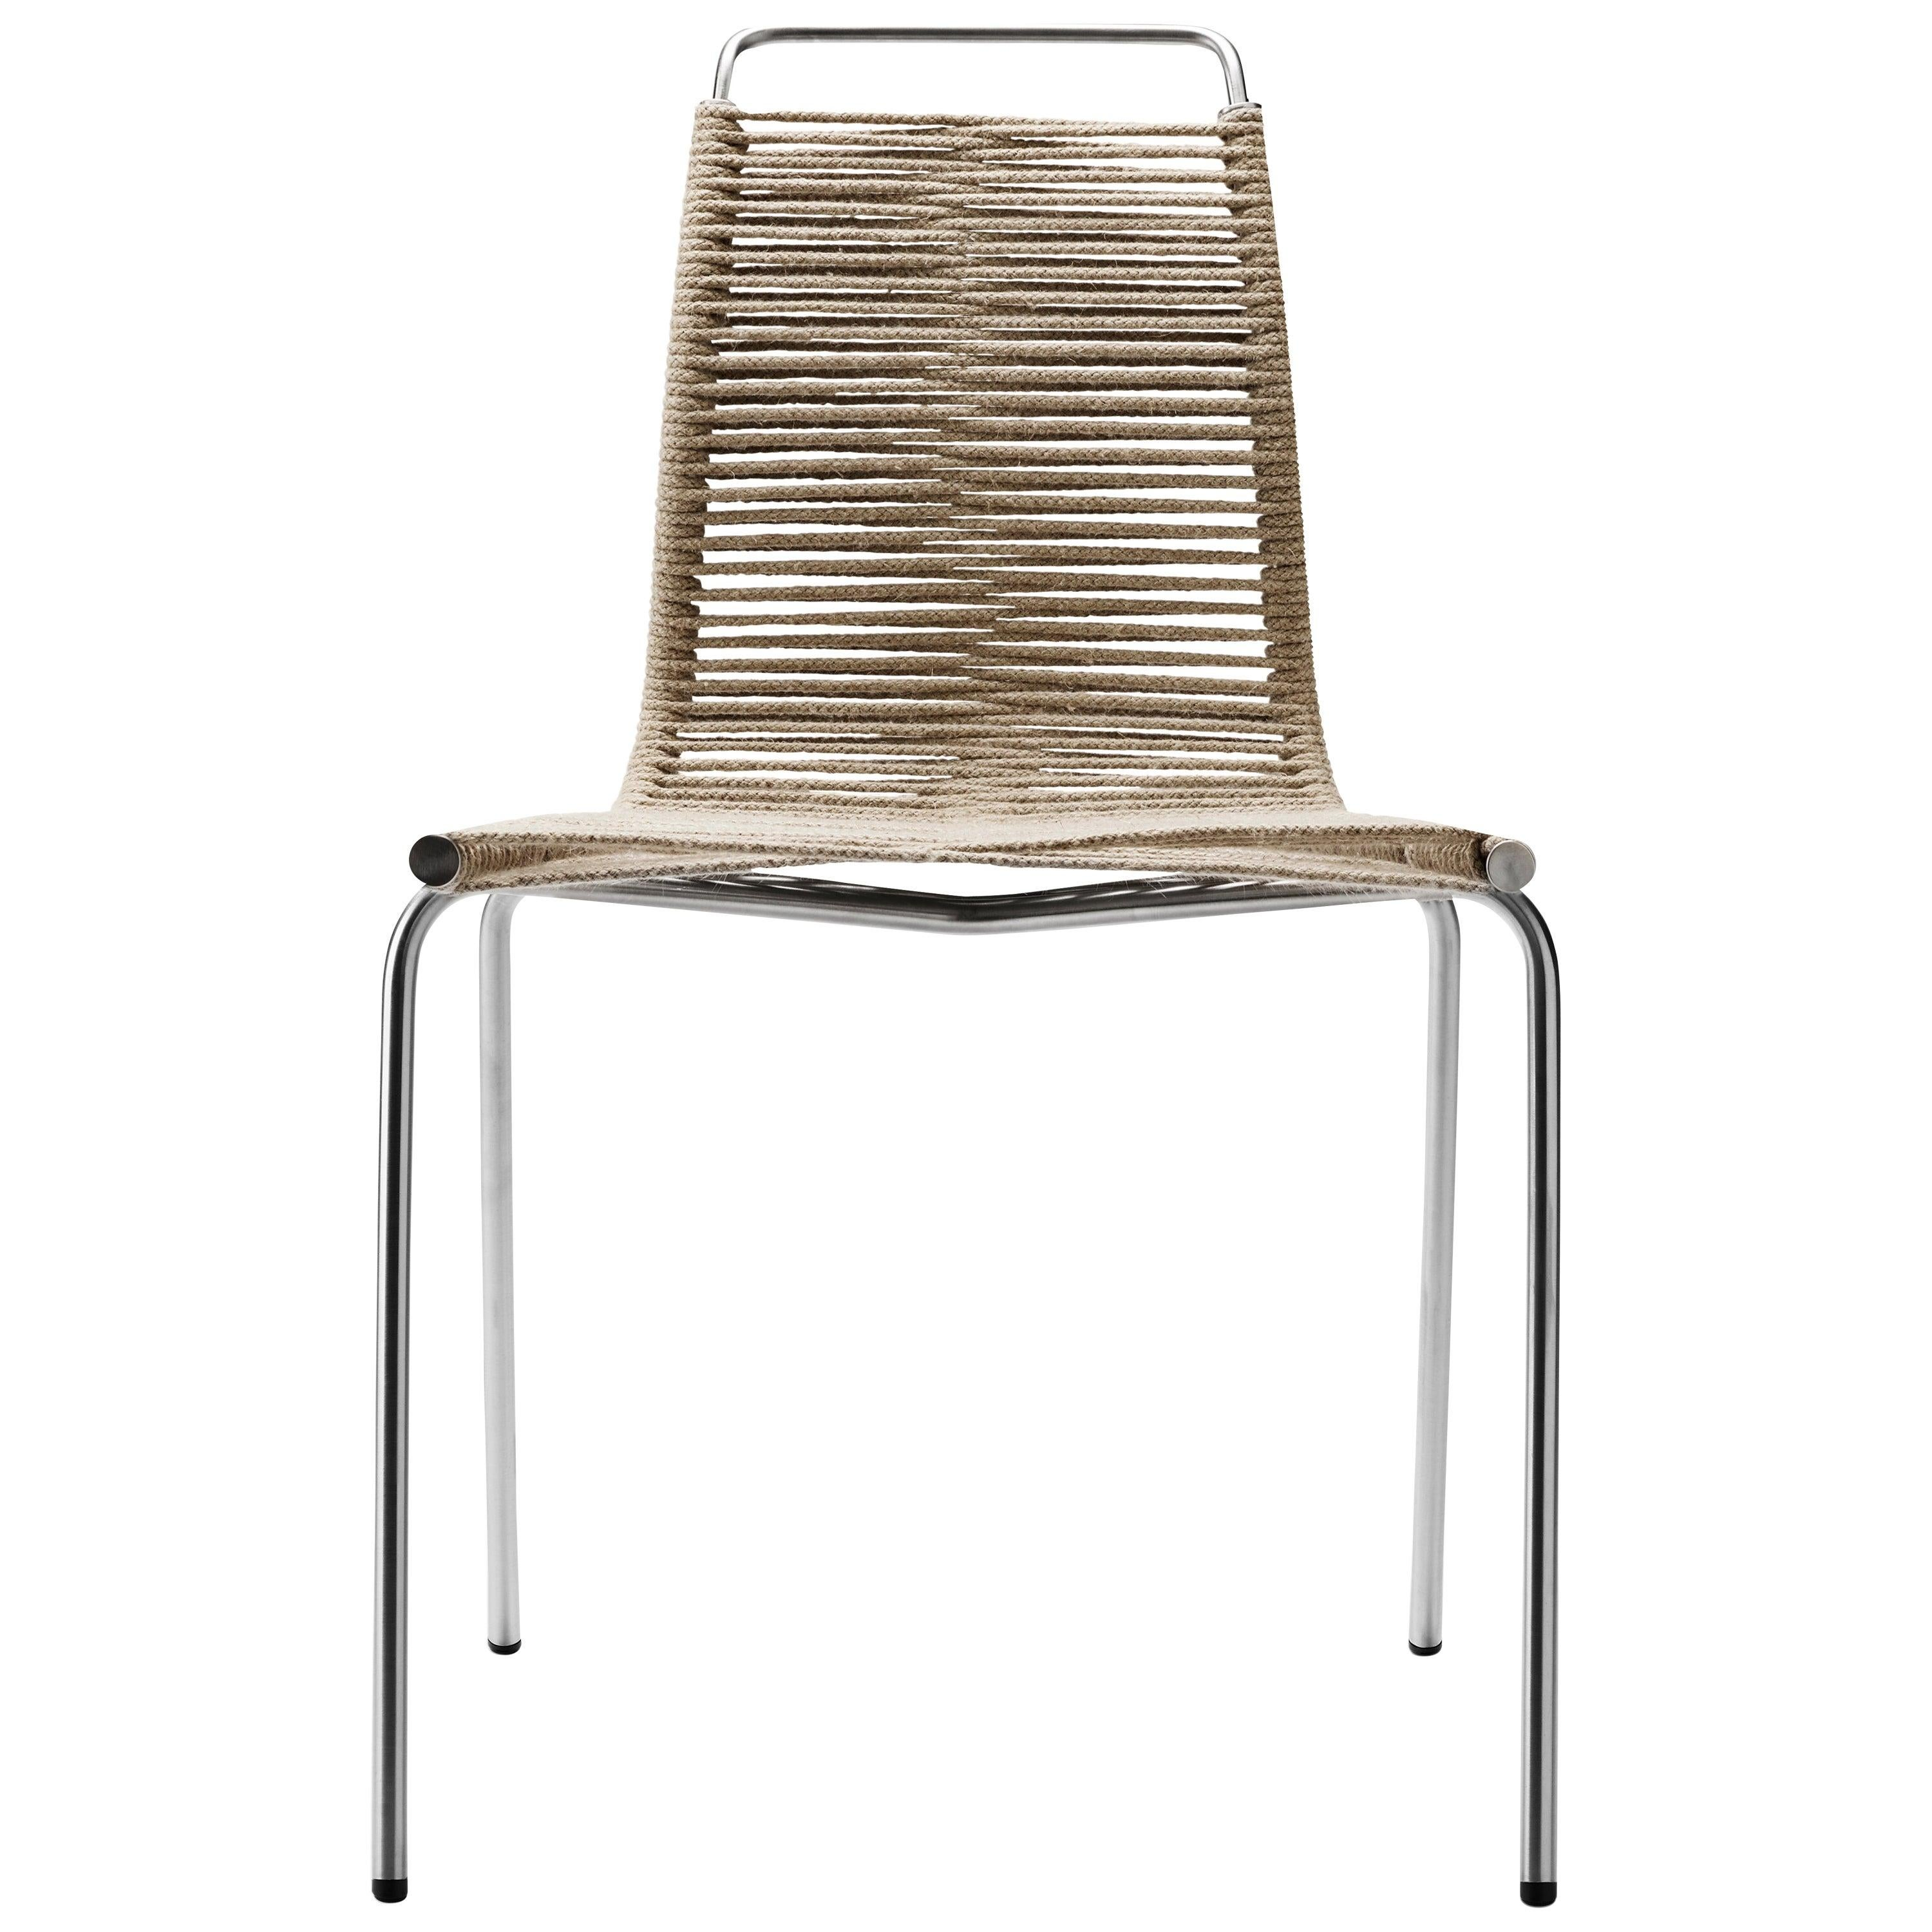 PK1 Dining Chair in Stainless Steel Base & Natural Flag Halyard by Poul Kjærholm